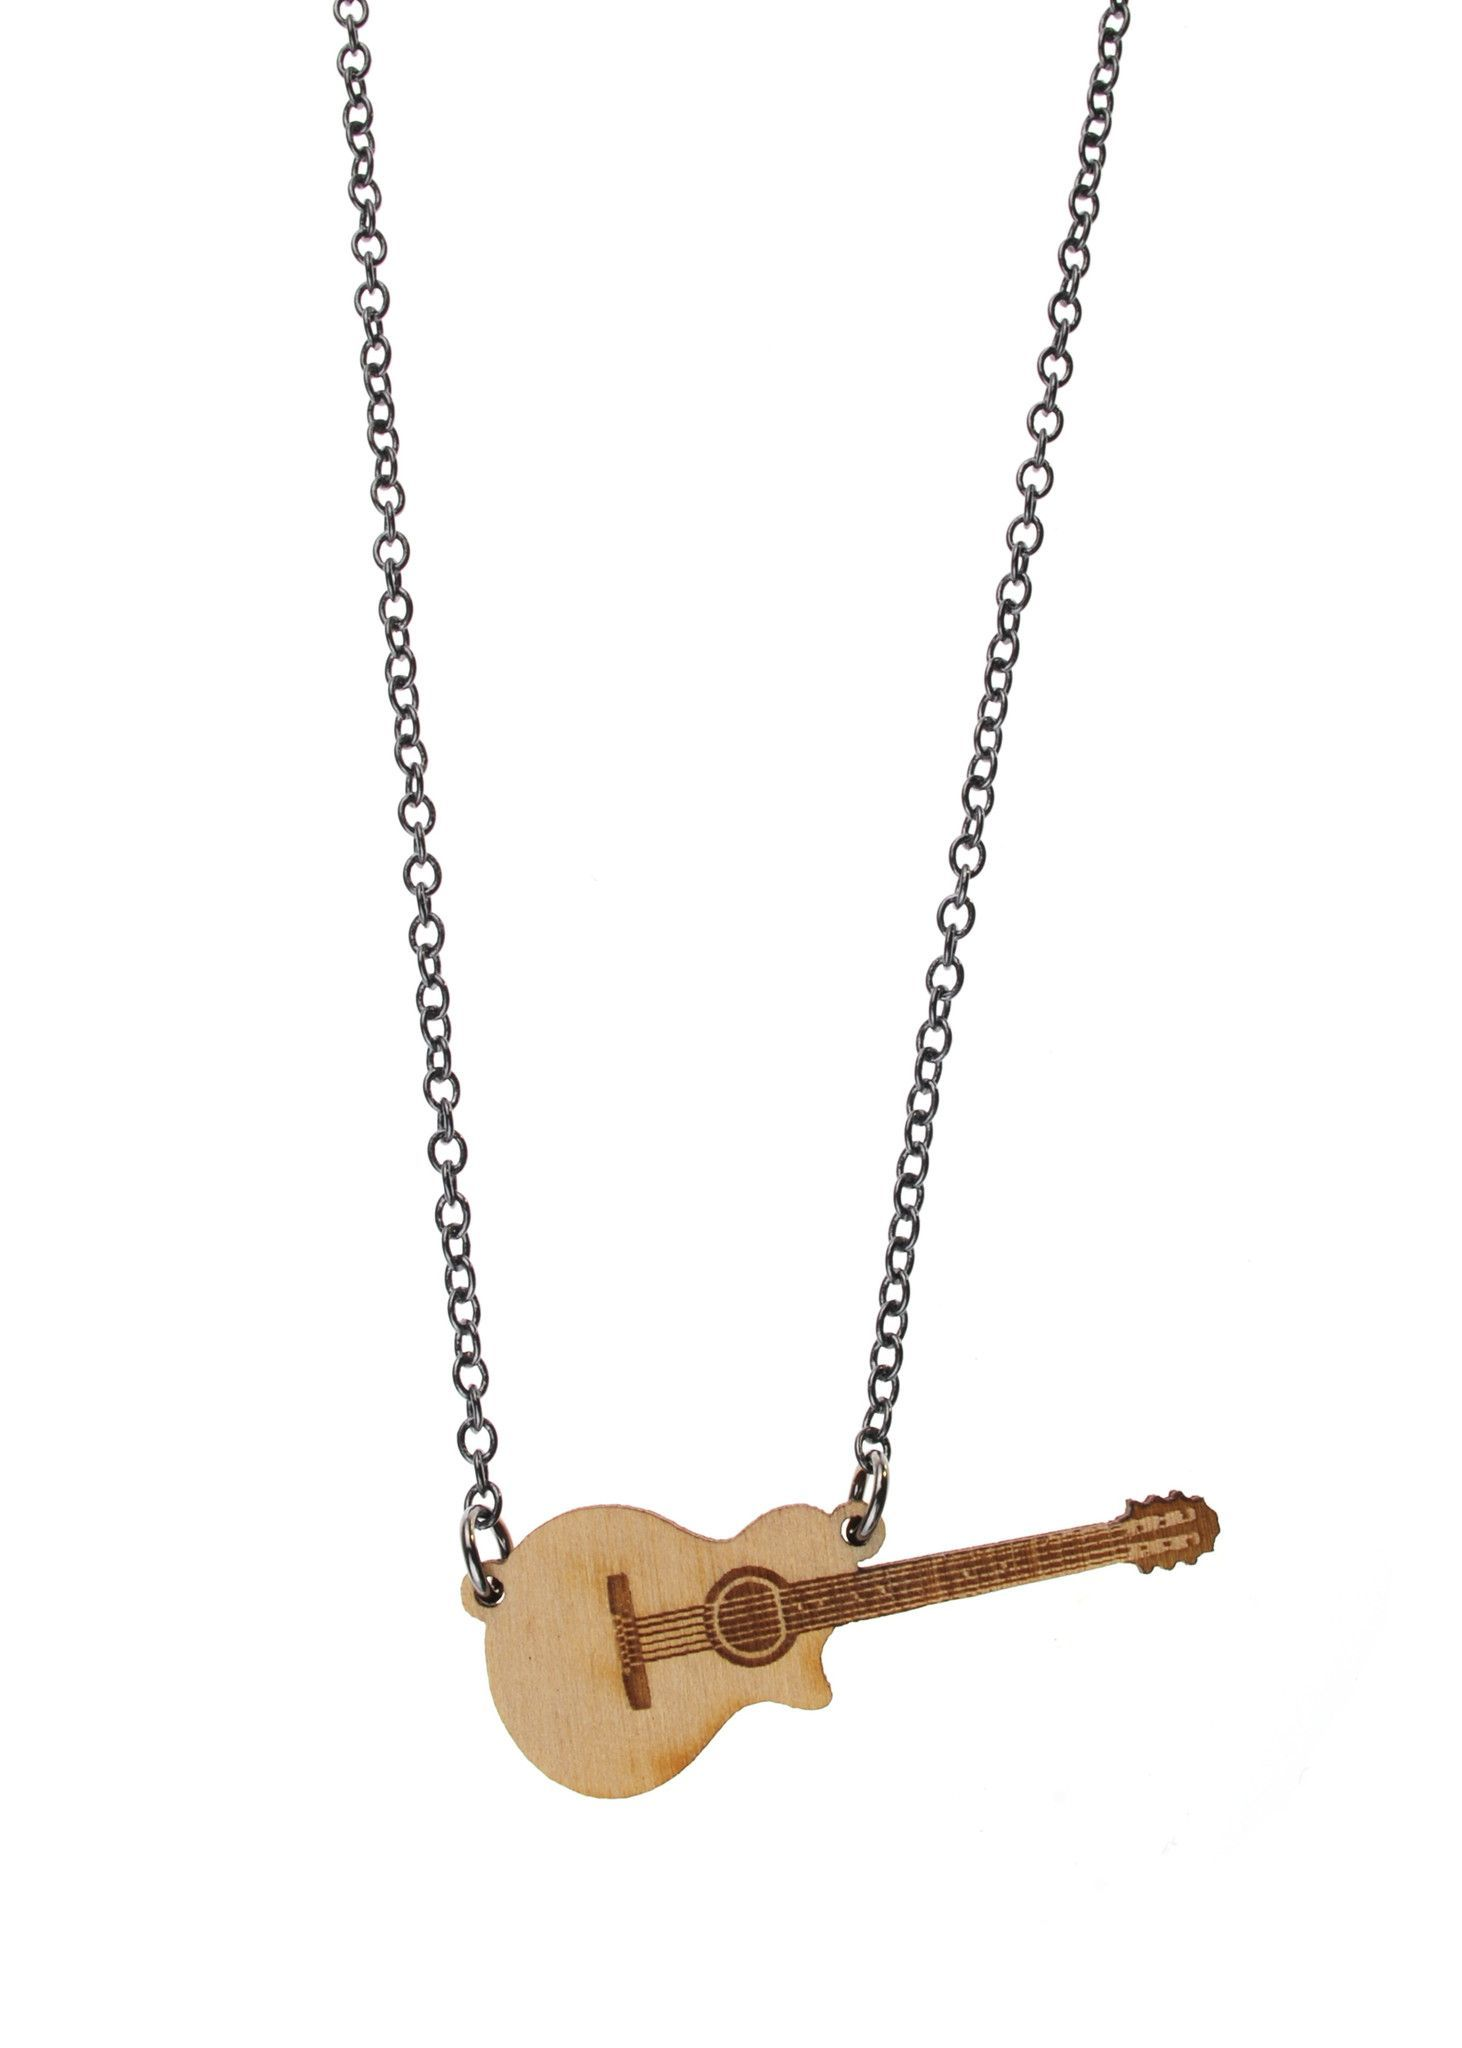 spinning diamond polished necklace guitar index wheel yellow gold